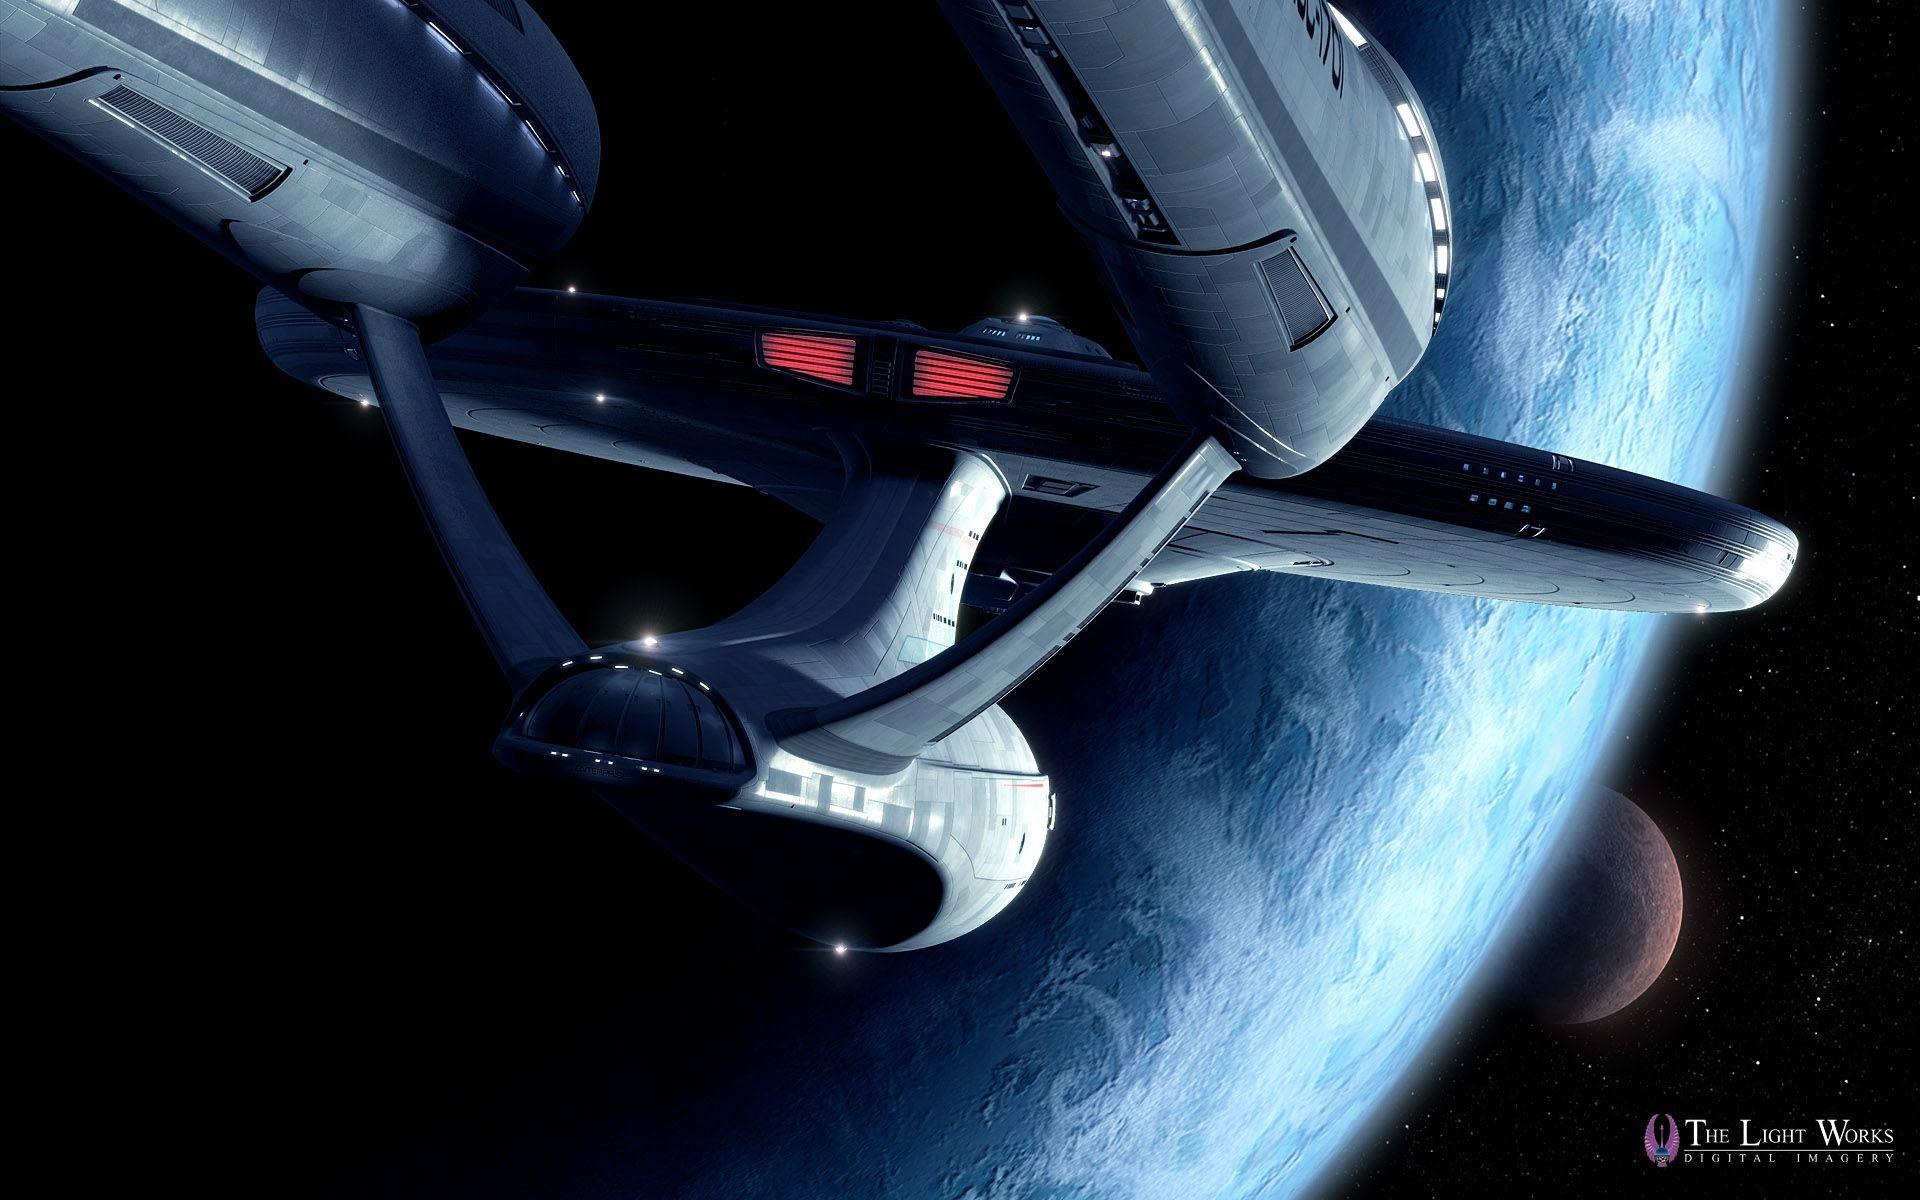 Starship Enterprise Wallpapers